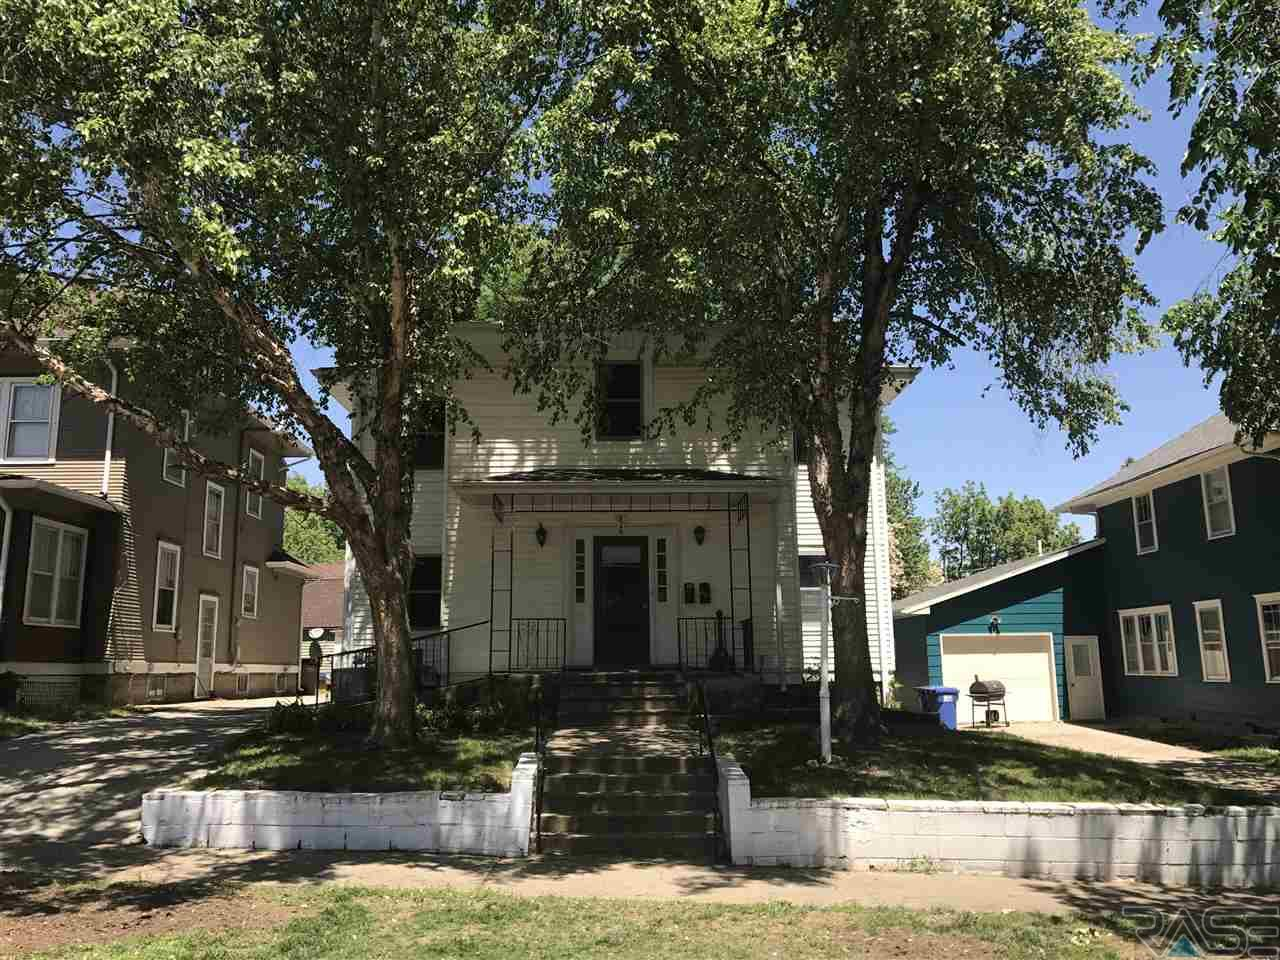 826 W 2nd St, Sioux Falls, SD 57104